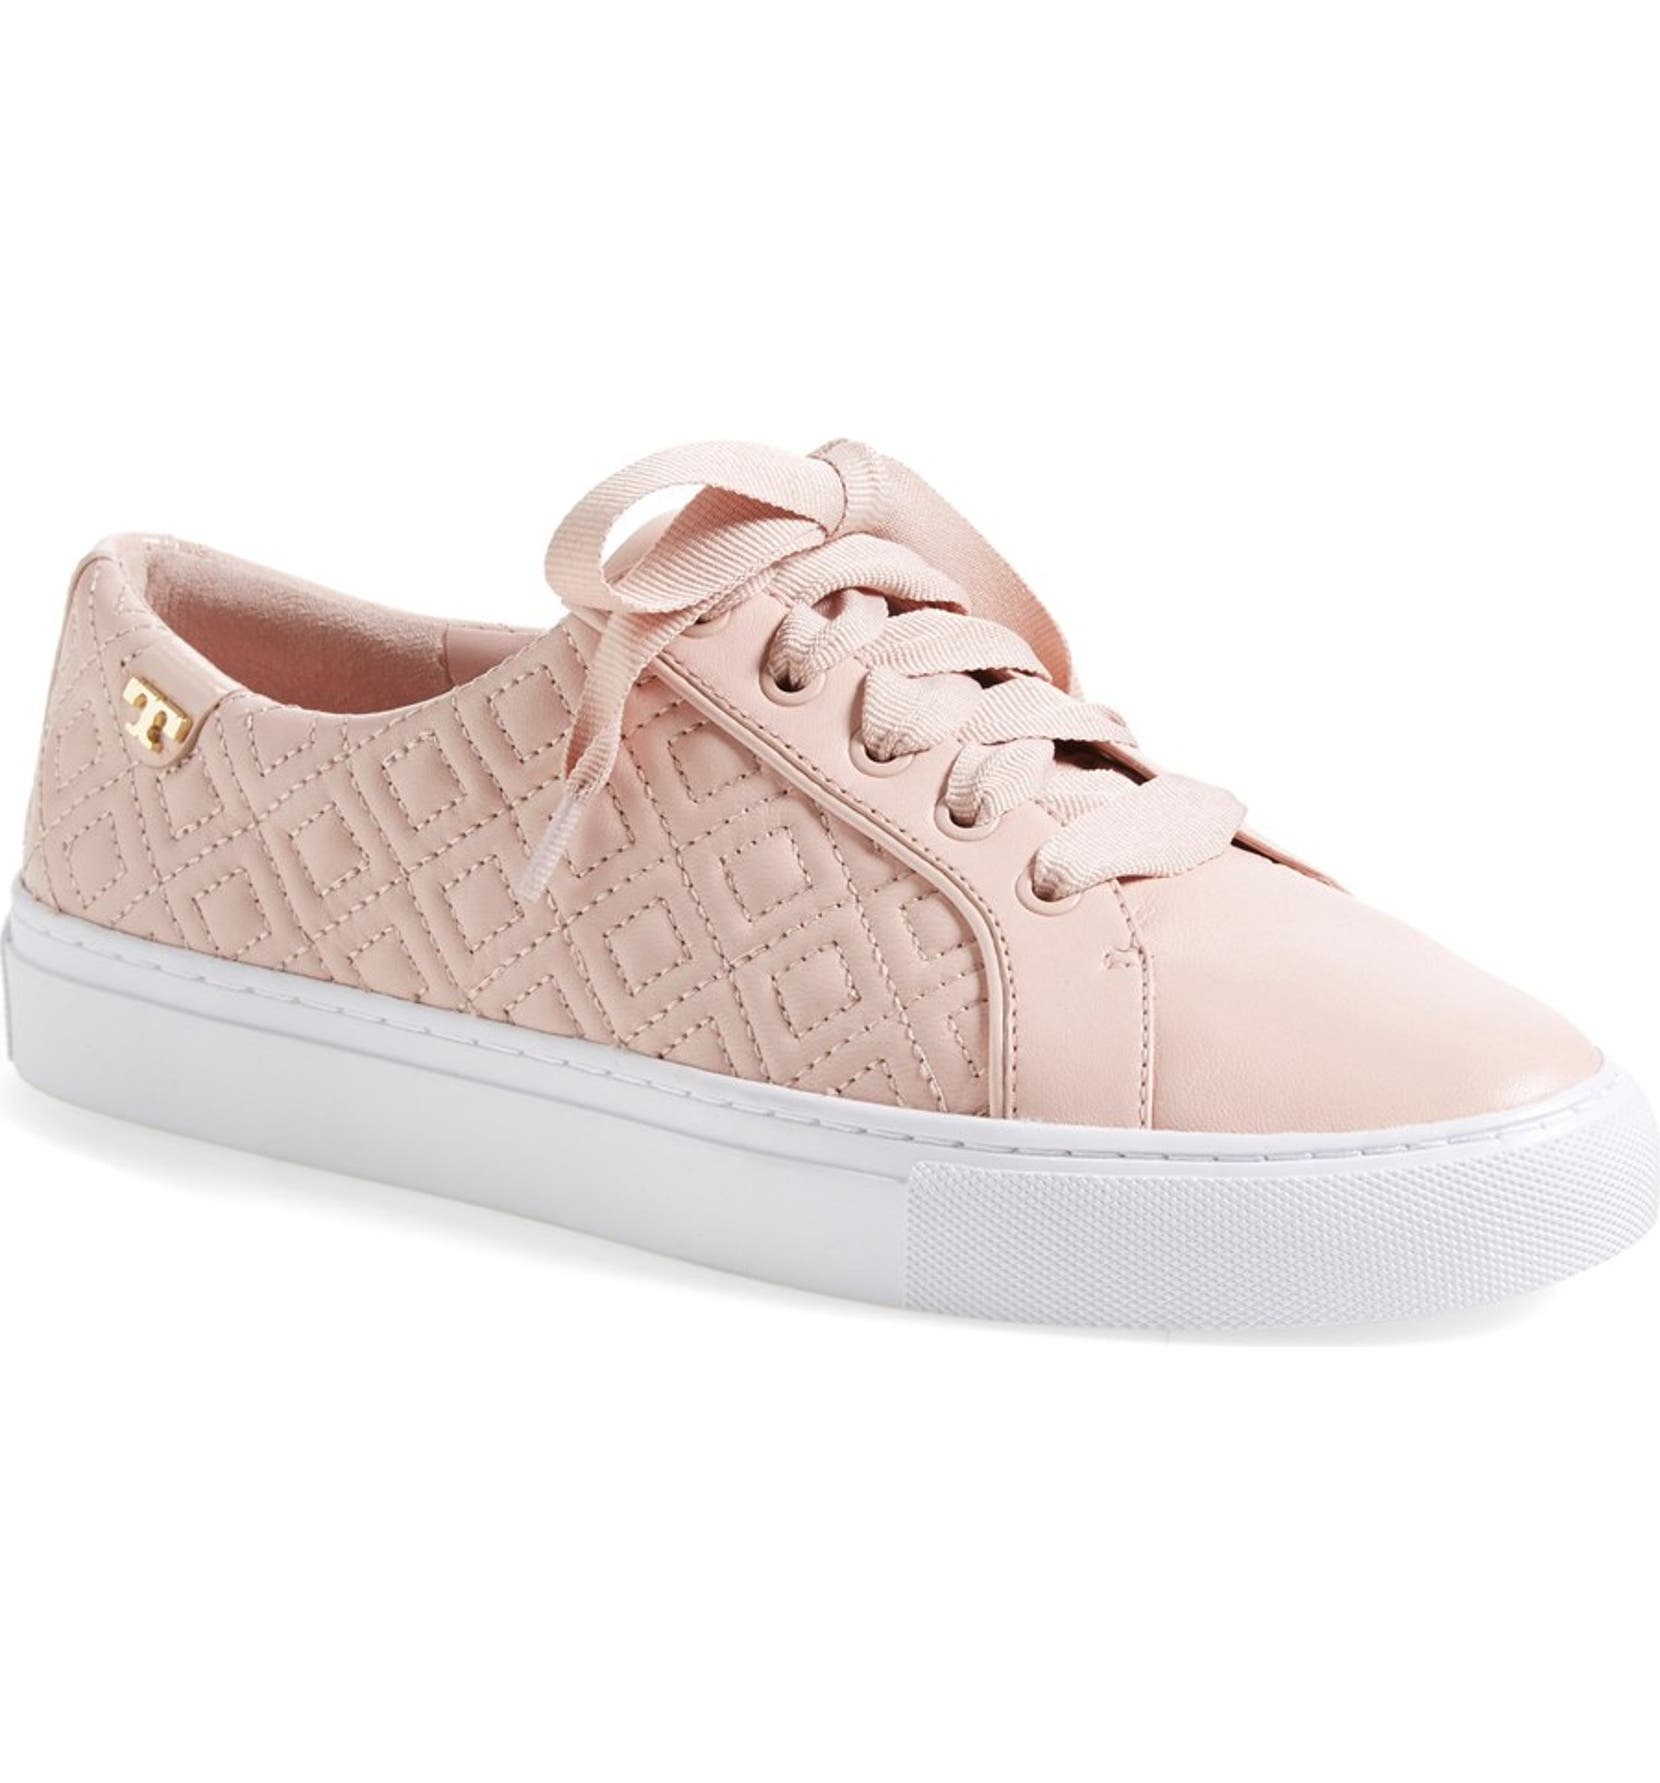 5215c05980a8 Tory Burch  Marion  Quilted Sneaker (Women)